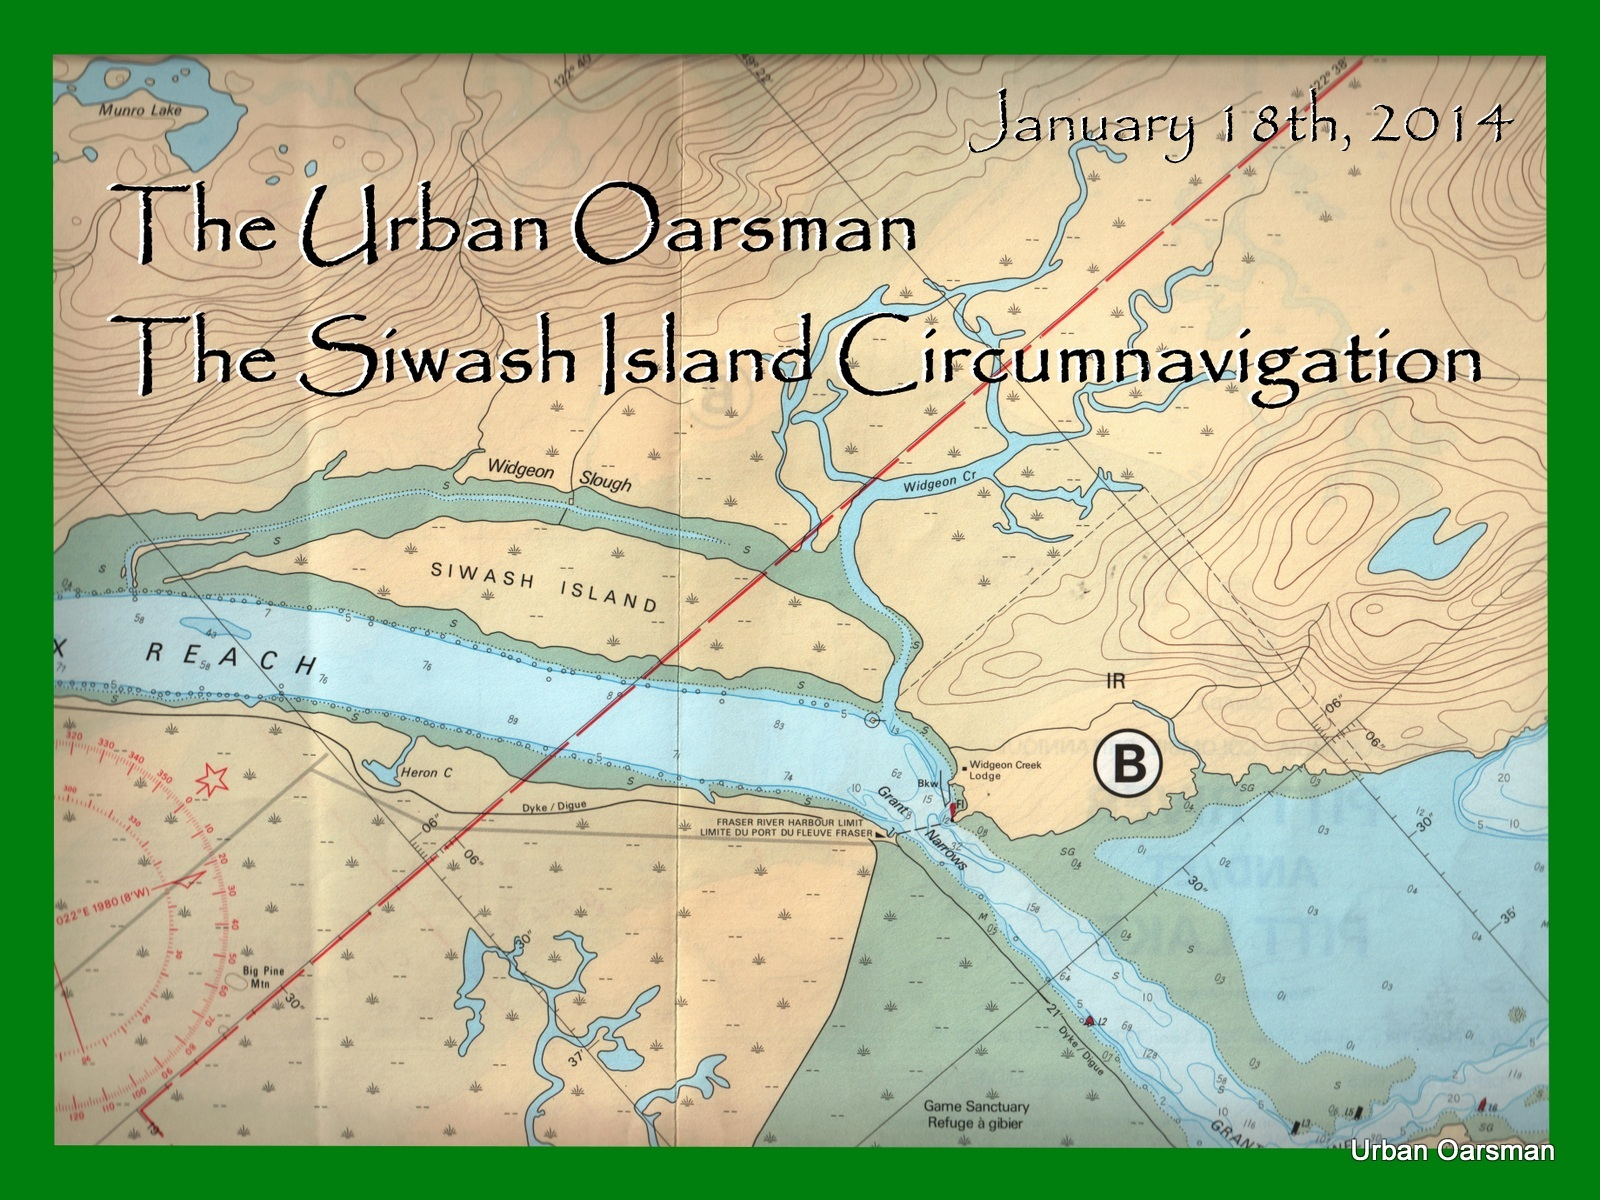 The Urban Oarsman